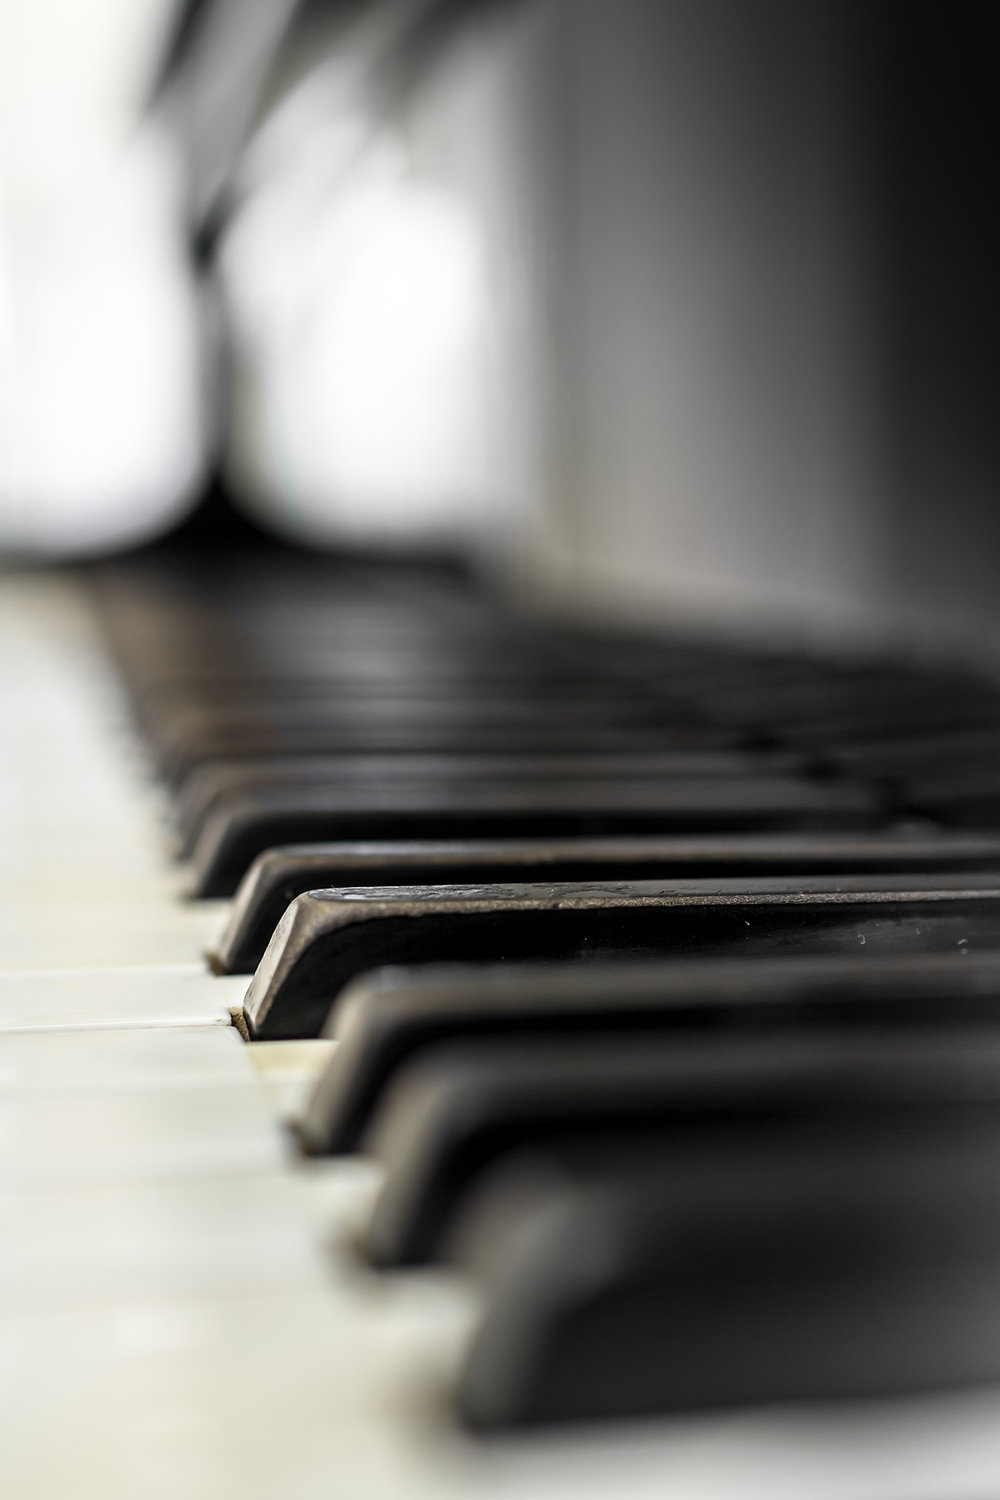 bigstock-Extreme-Close-up-Of-Piano-Keys-232393648.jpg